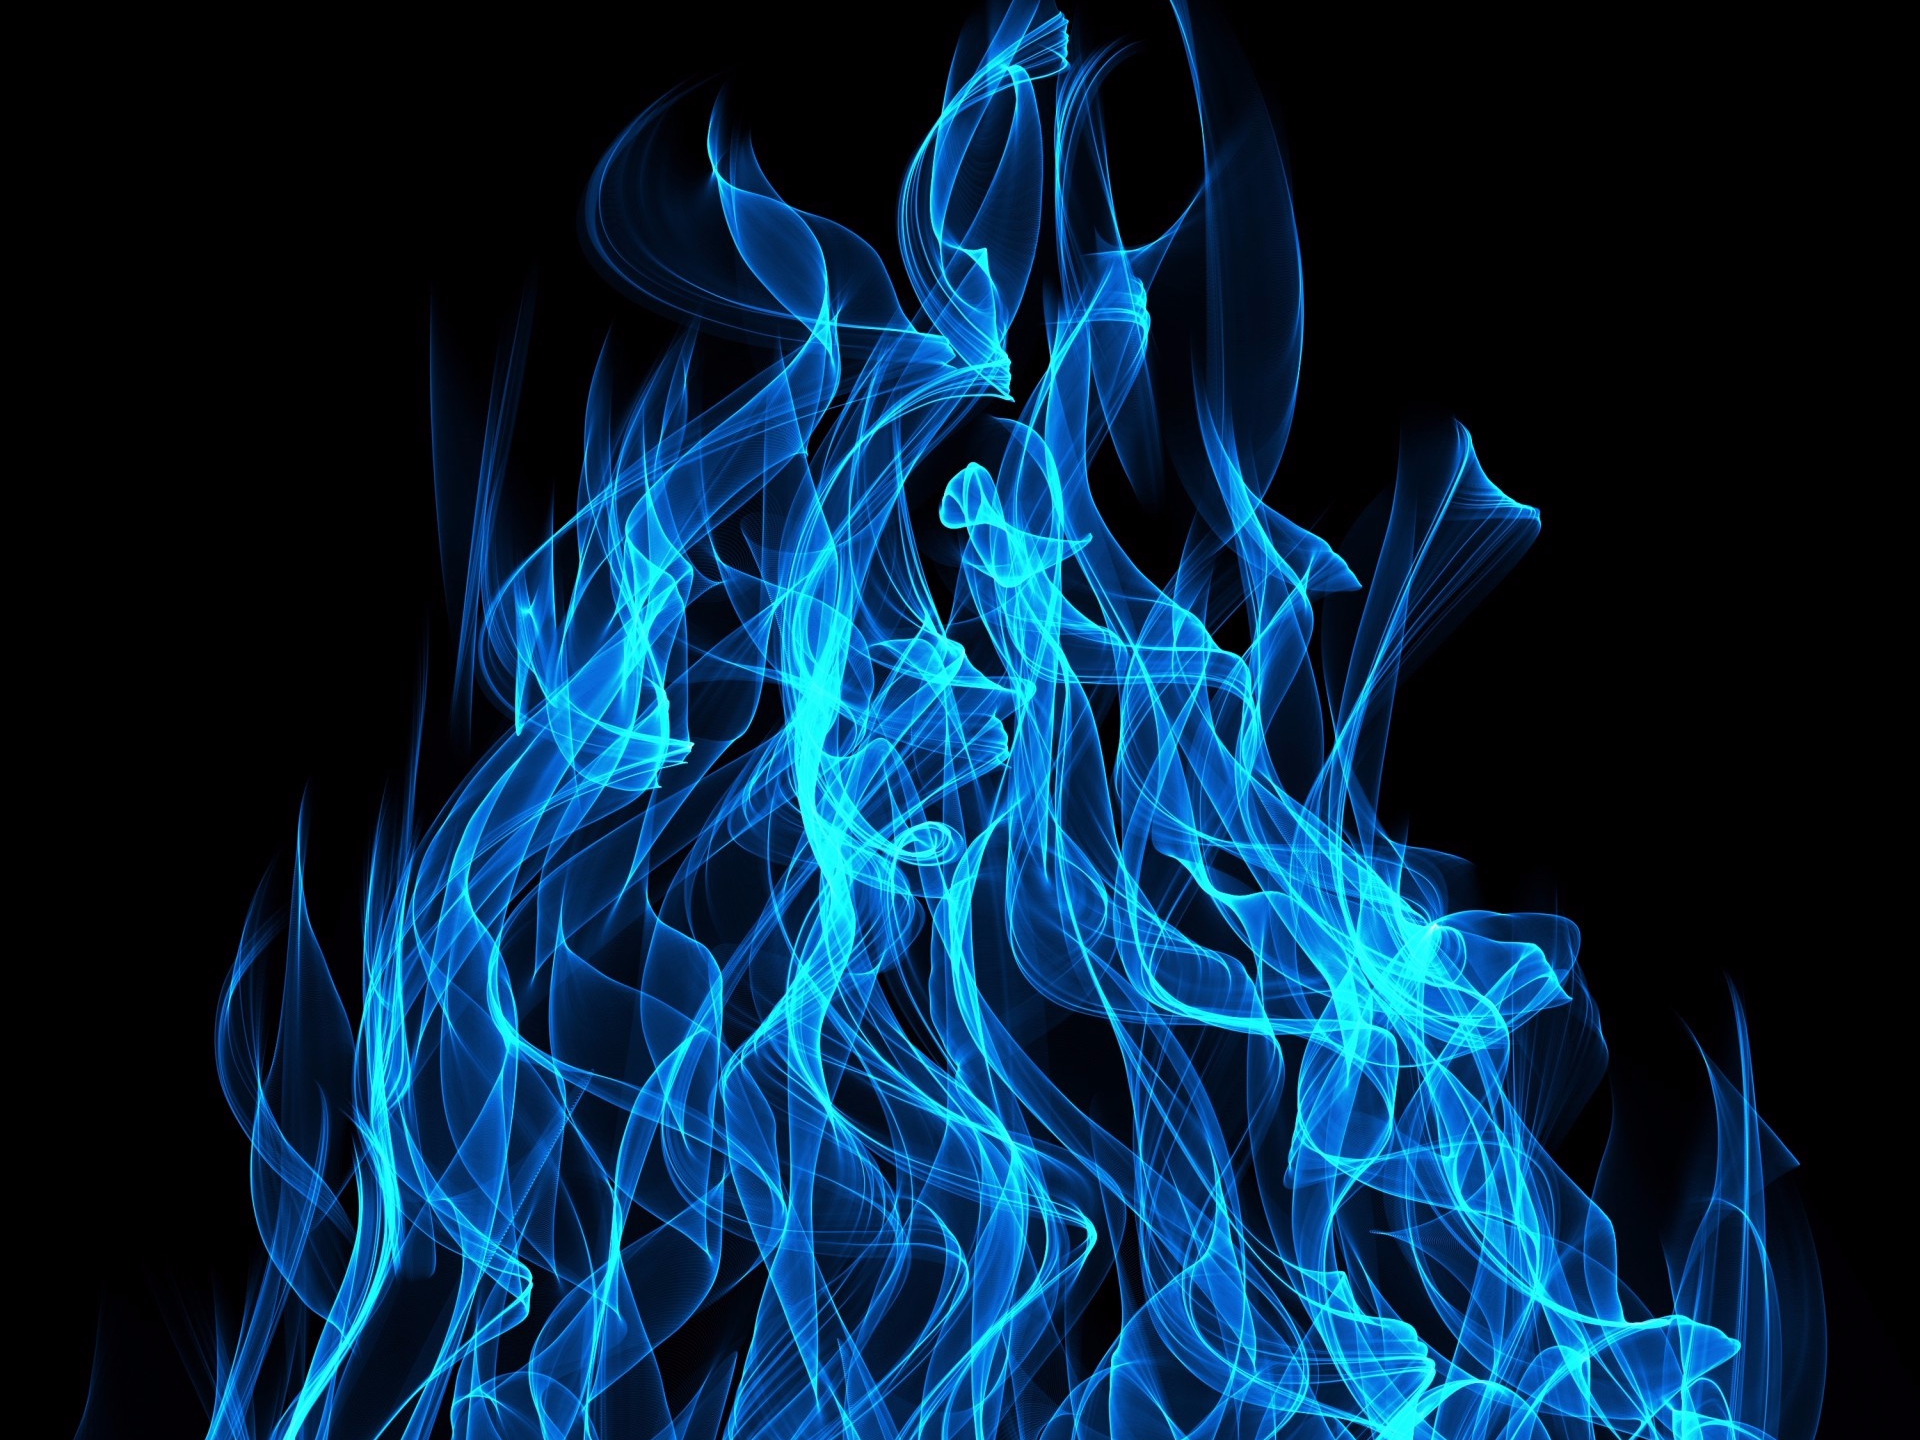 Flame Backgrounds on Wallpapers Vista